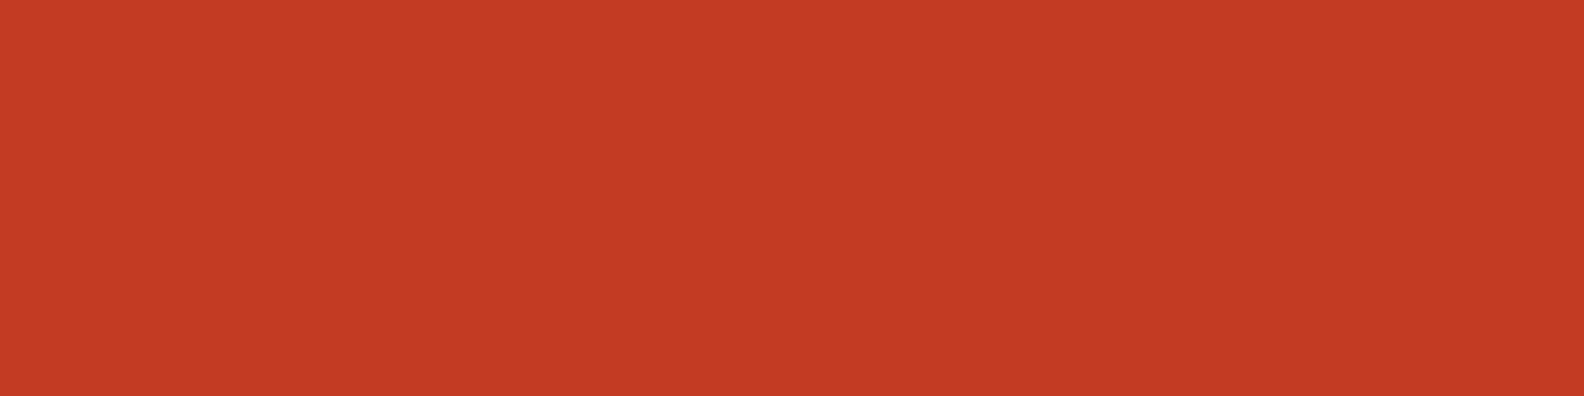 1584x396 Dark Pastel Red Solid Color Background